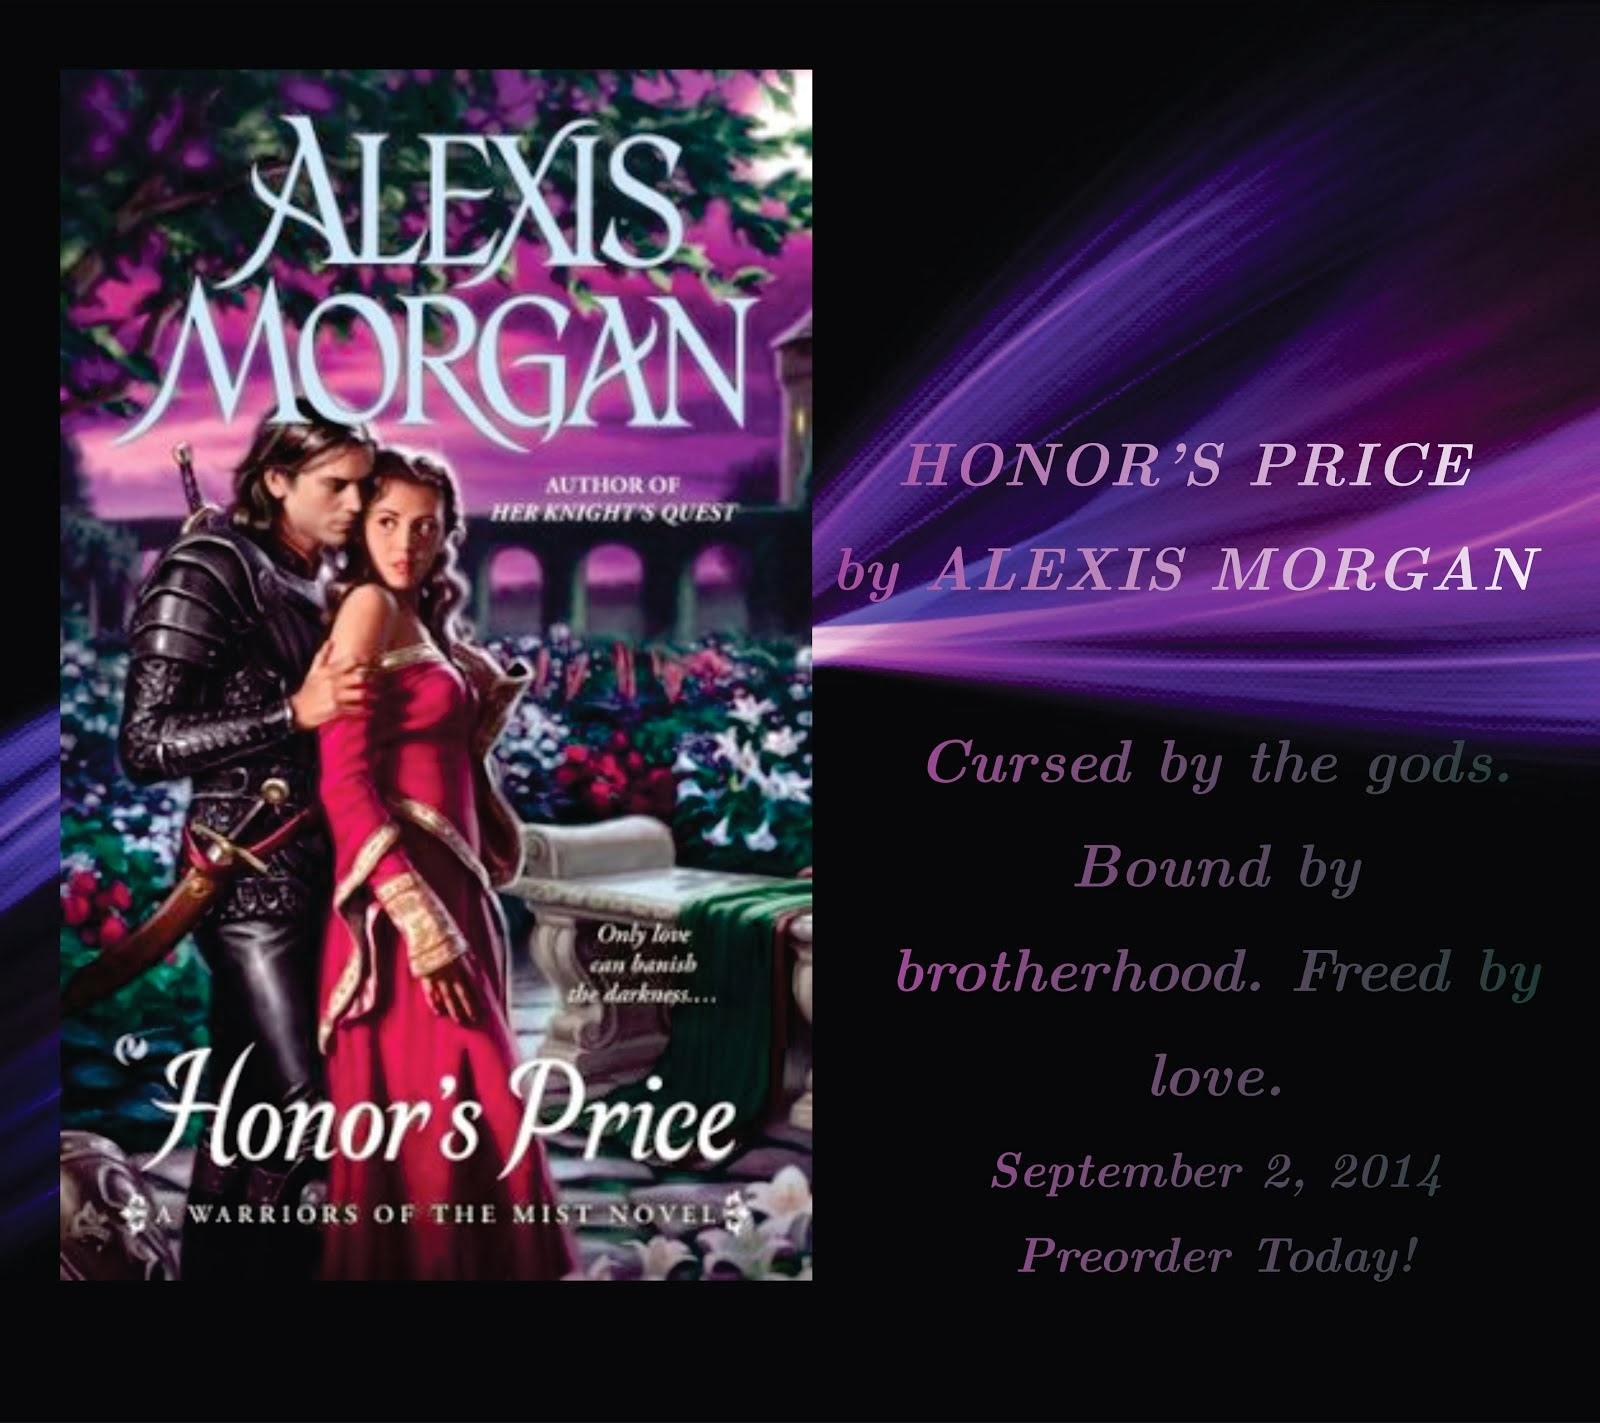 HONOR'S PRICE